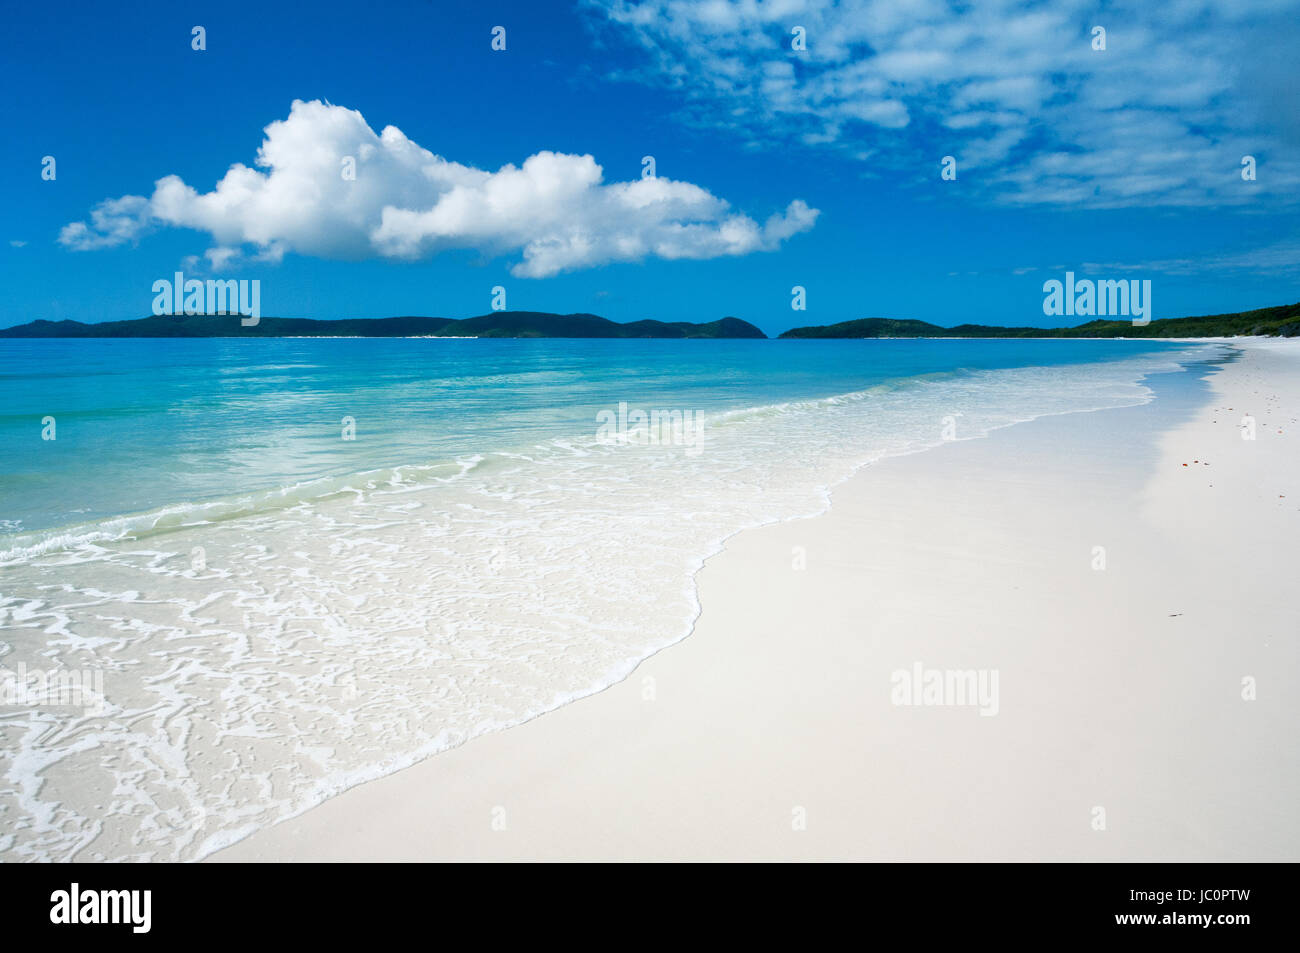 Famous Whitehaven Beach on Whitsunday Island. - Stock Image